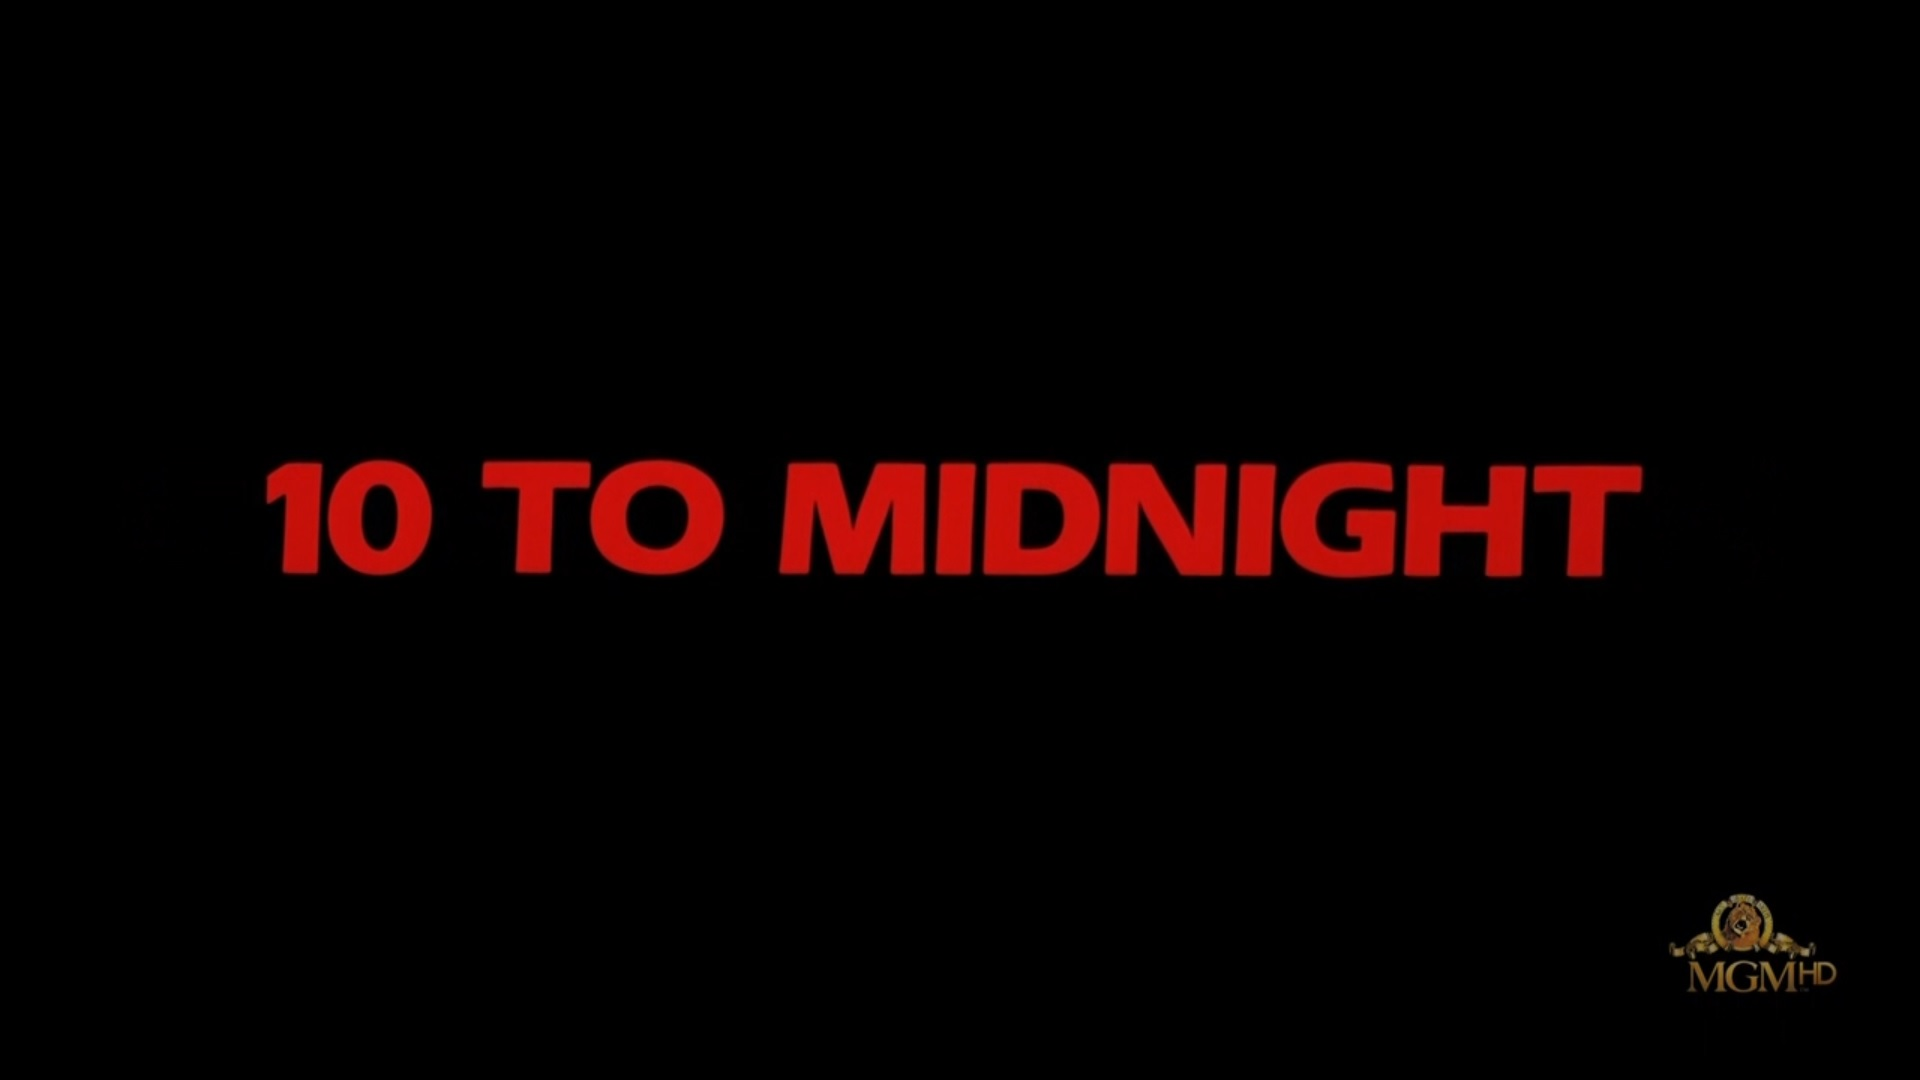 10 To Midnight 00.jpg